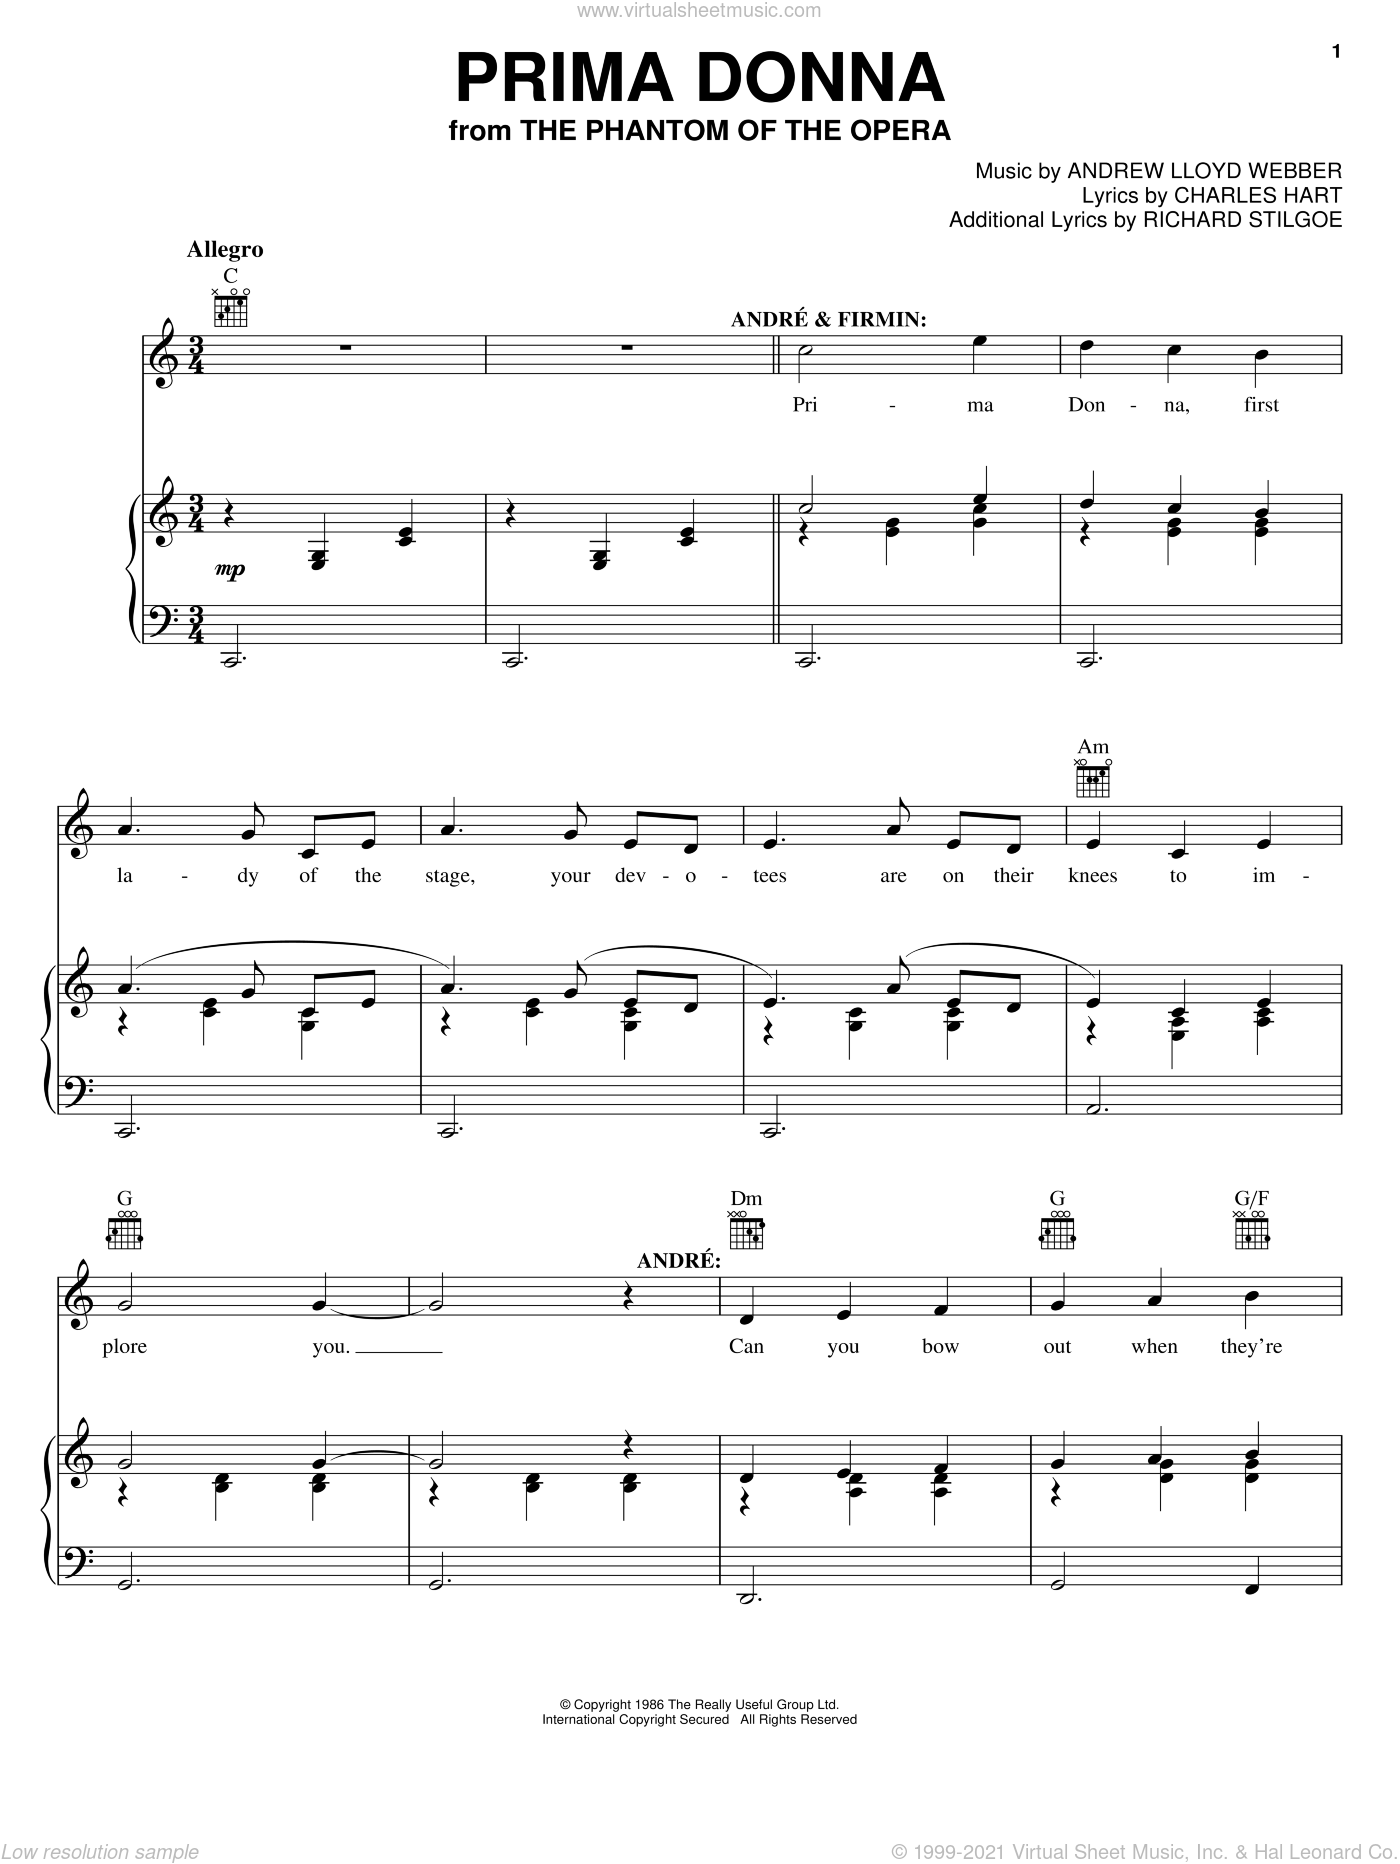 Prima Donna sheet music for voice, piano or guitar by Richard Stilgoe, Andrew Lloyd Webber and Charles Hart. Score Image Preview.